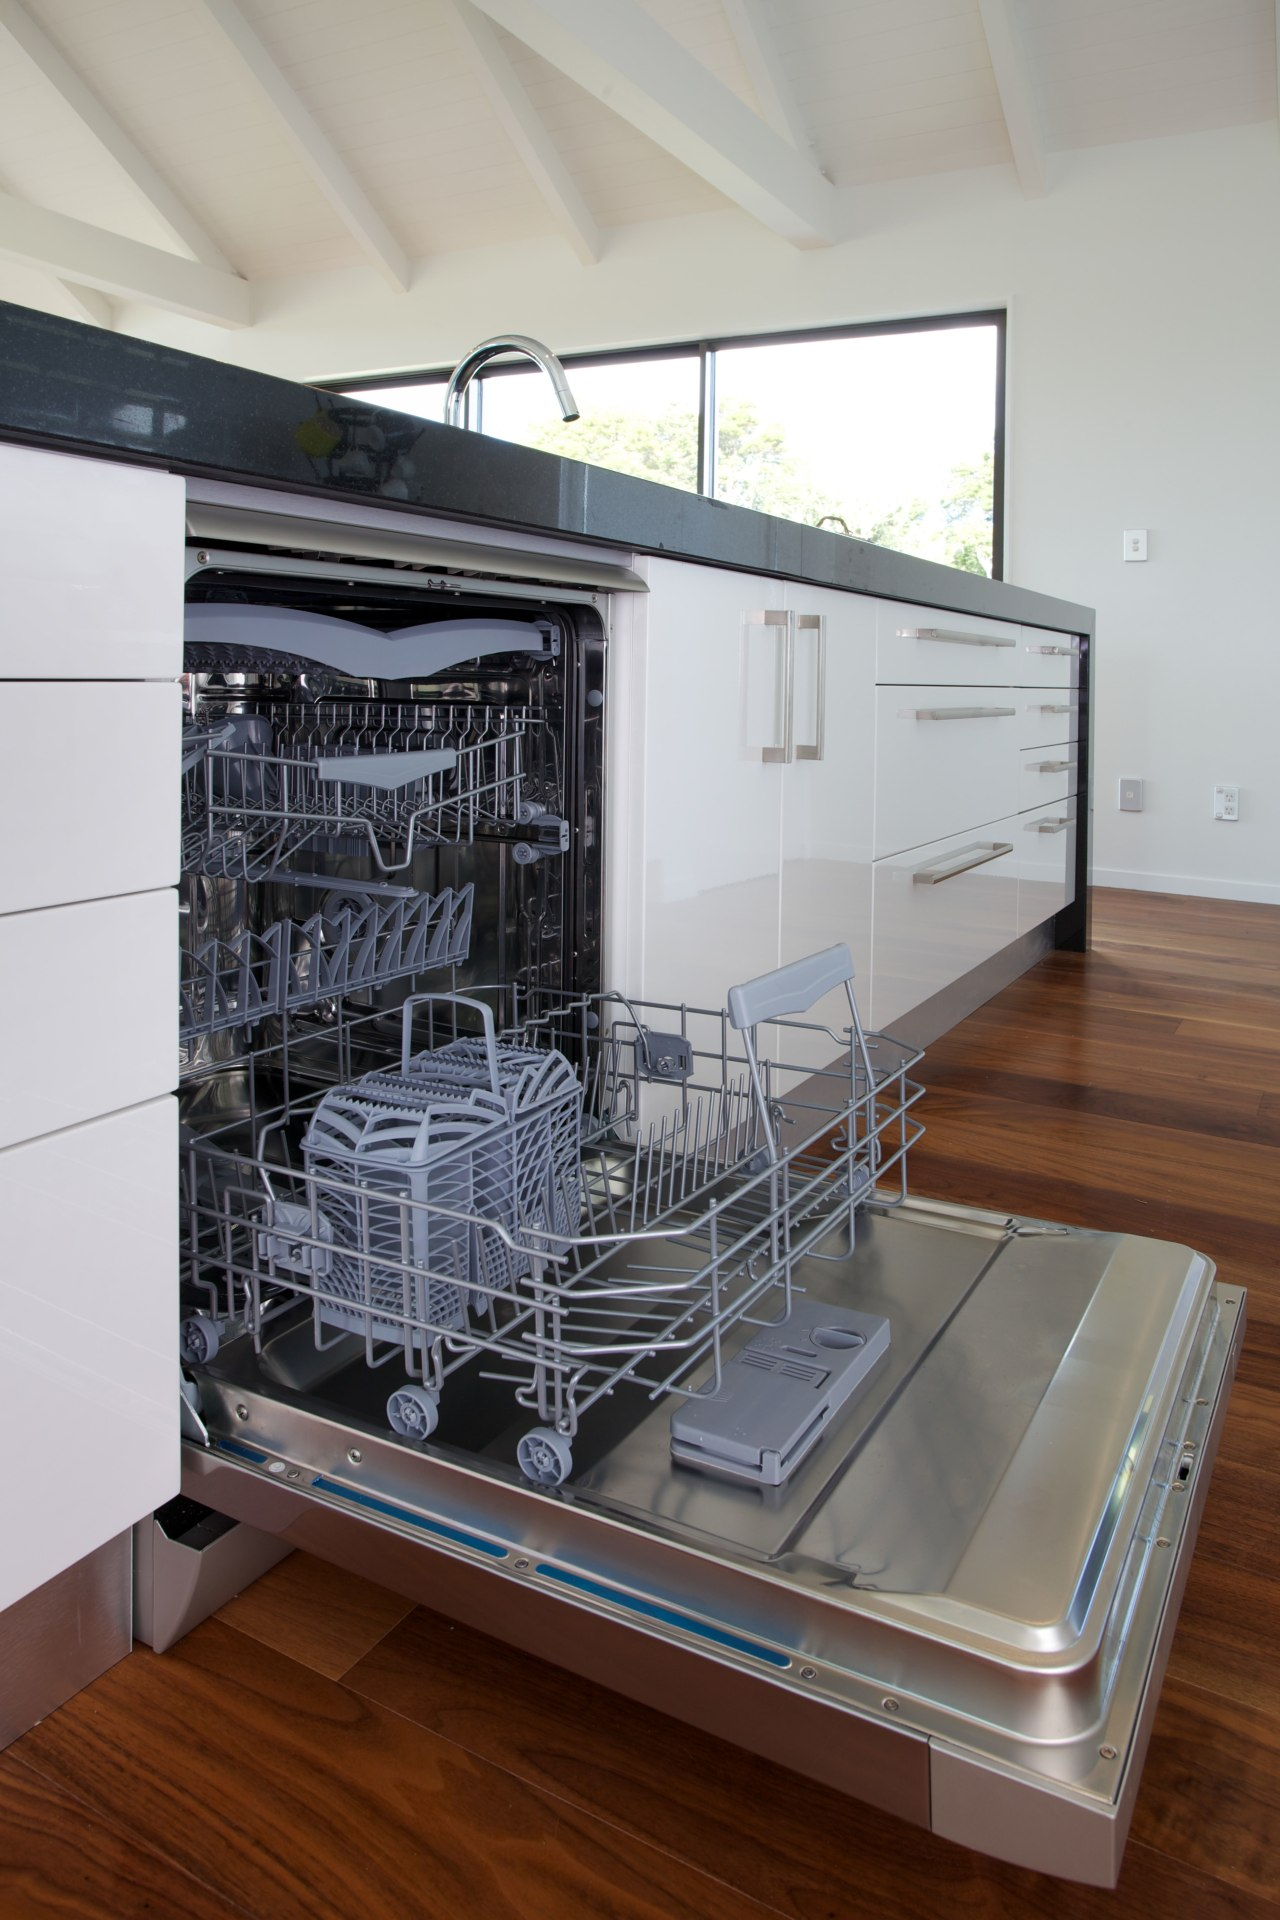 The Te Arai Estate show home is equipped dishwasher, home appliance, kitchen appliance, major appliance, gray